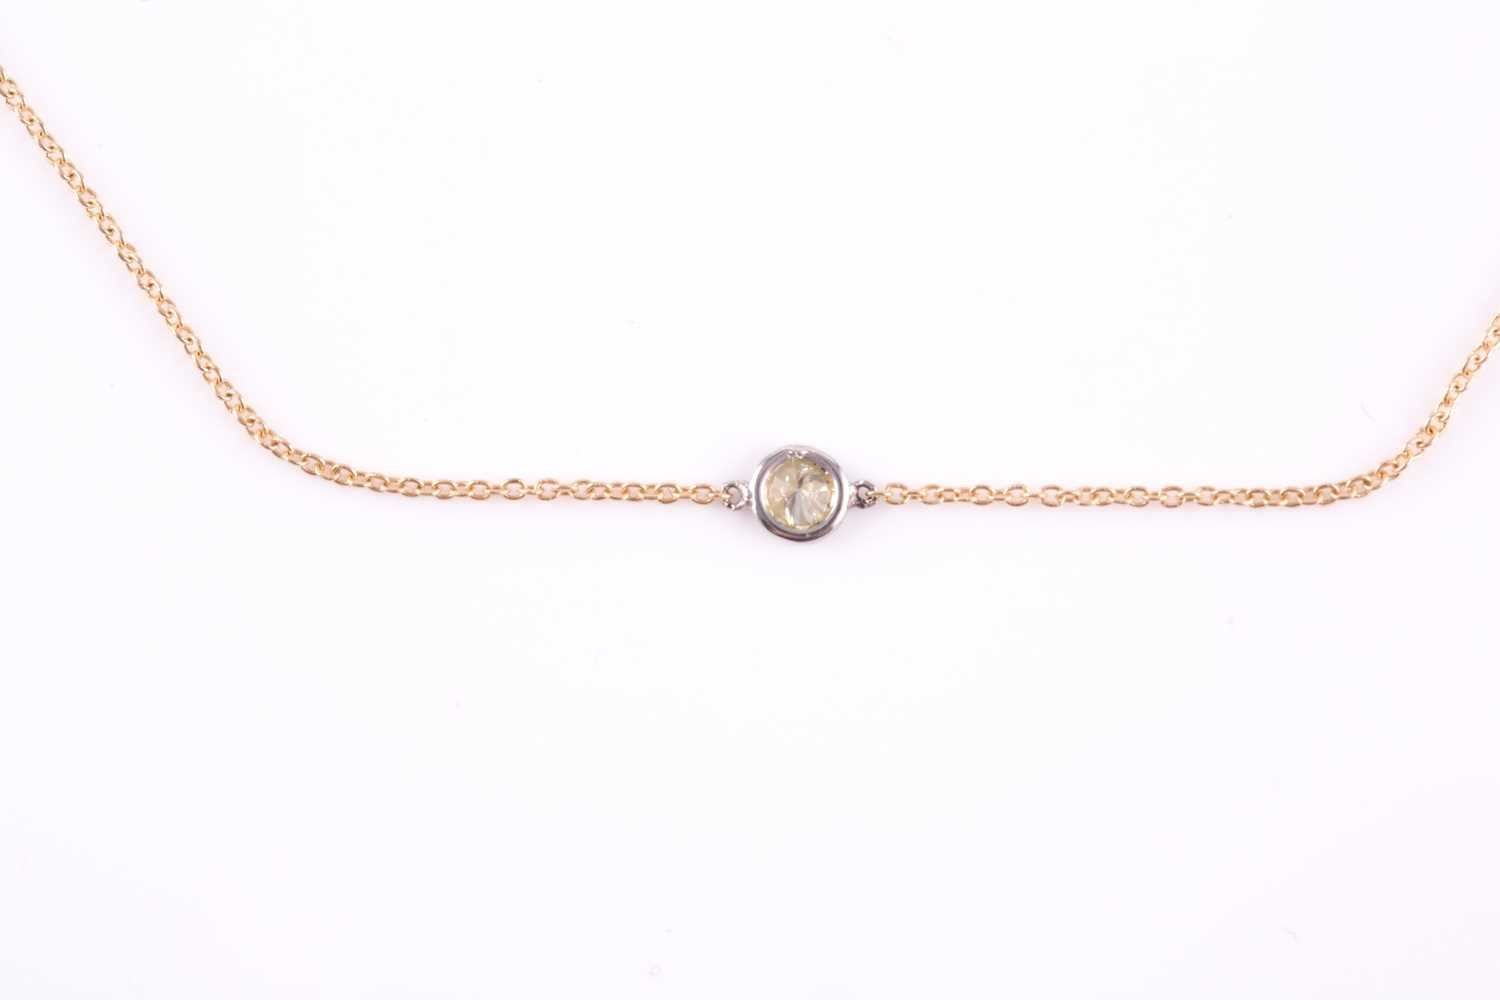 An 18ct yellow gold and diamond necklace, the chain set with a collet-mounted round brilliant-cut - Image 2 of 3